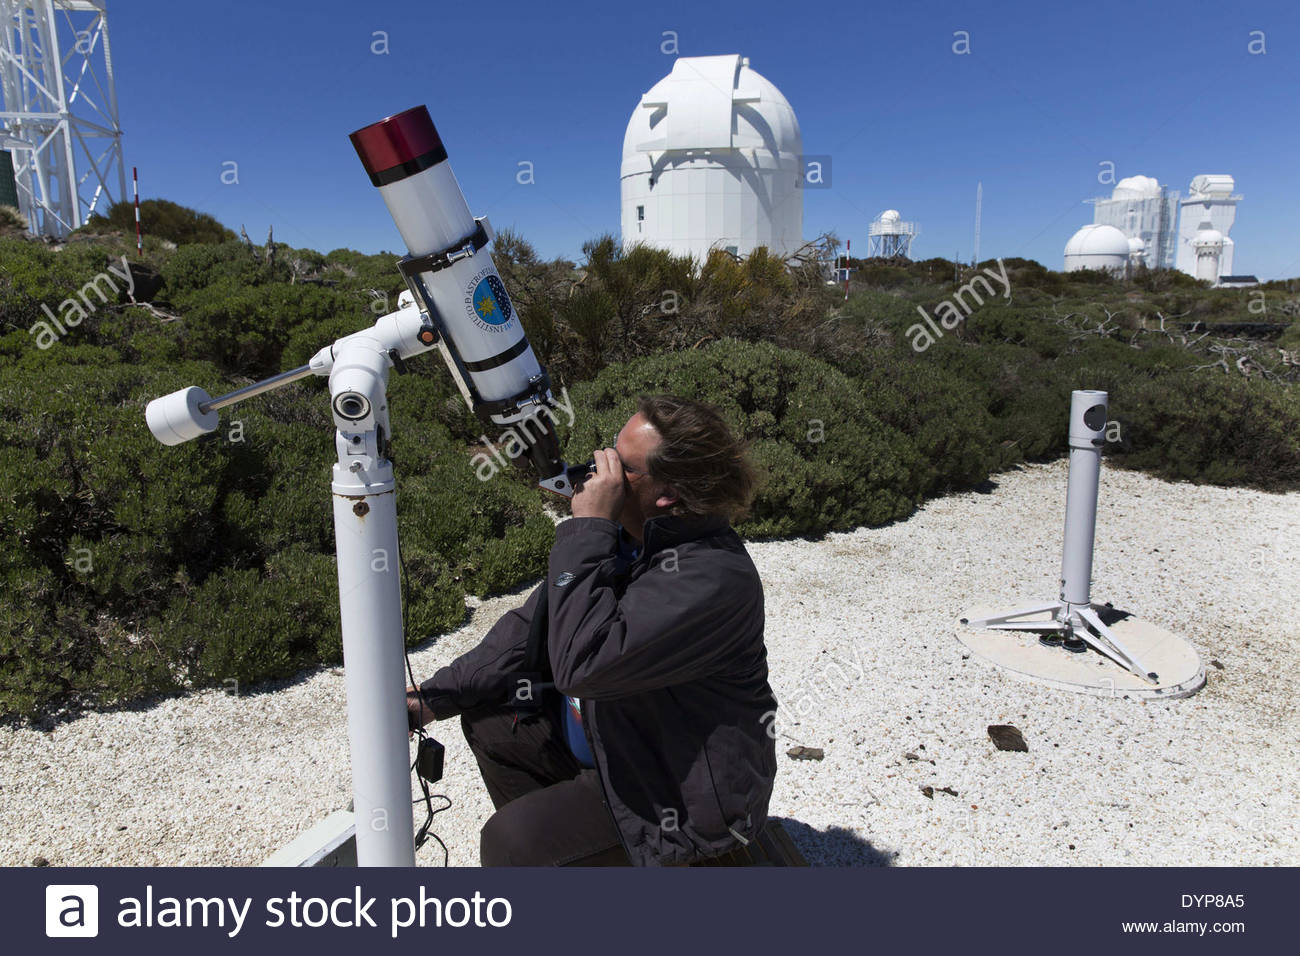 Tenerife, Canary Island, Spain. 21st Apr, 2014. Alfred ROSENBERG GONZALEZ in the Instituto de Astrofisica de Canarias on April 21, 2014. View of telescopes in the Instituto Astrofisico de Canarias (IAC) in Tenerife, Canary Islands, Spain on April 21, 2014. is situated 2.390 metres above sea level in Izaña, an area of Tenerife that lies across three municipal districts - La Orotava, Fasnia and Güímar. The first telescope for studying zodiacal light, light dispersed by interplanetary material, entered service here in 1964. Its geographical location (between the eastern and western solar ob - Stock Image